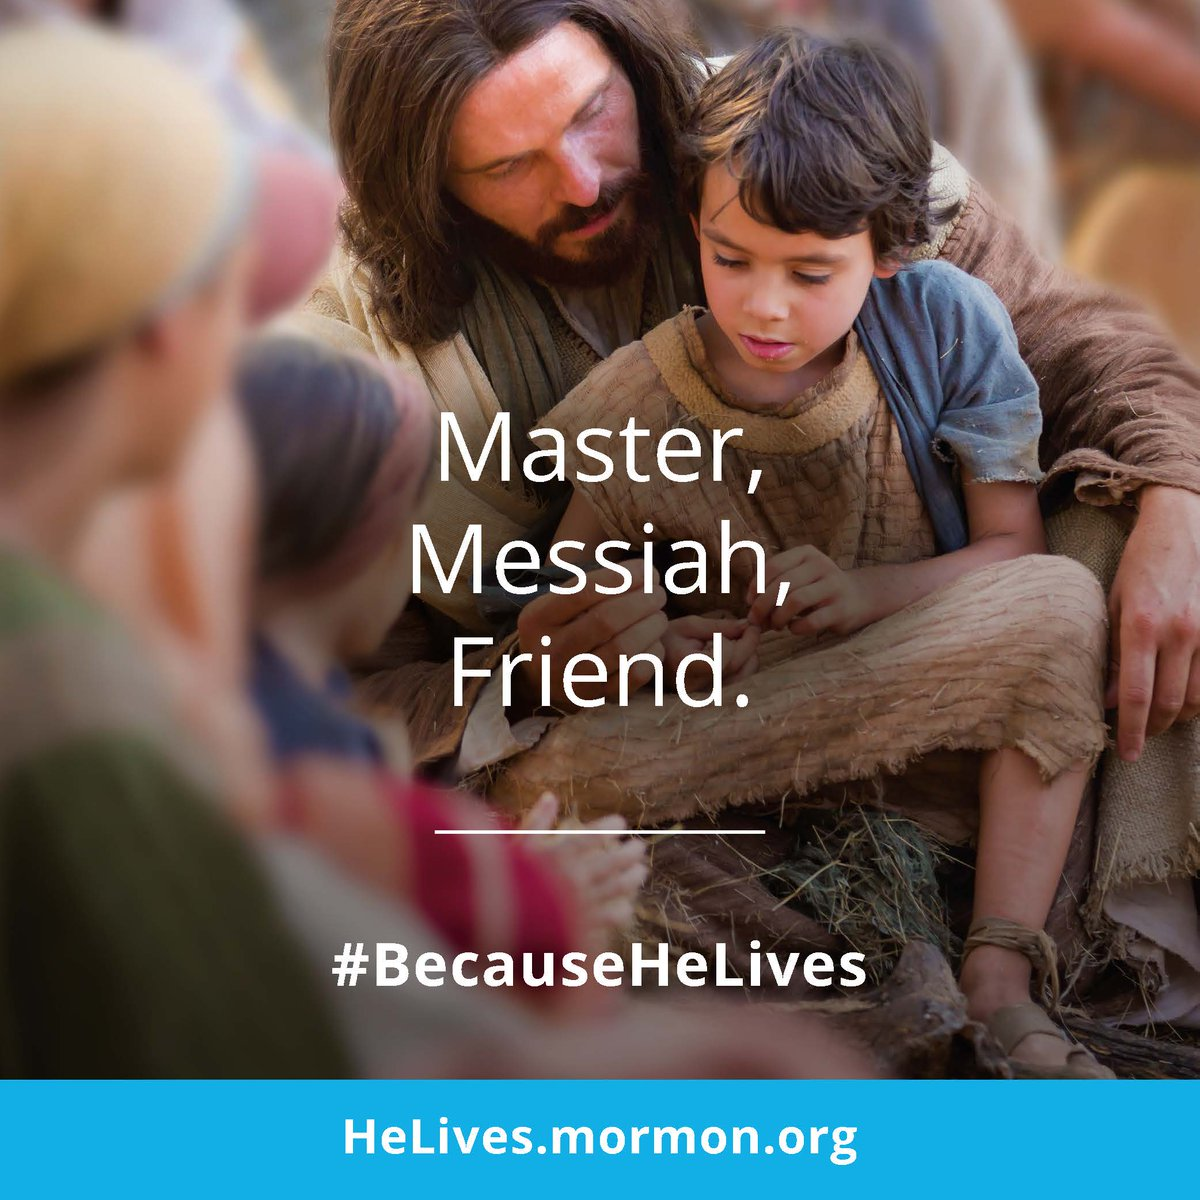 Why do we celebrate #Easter? To see a special video about it, visit http://t.co/HmEBVX1DuD #BecauseHeLives http://t.co/lzp6uQMQau